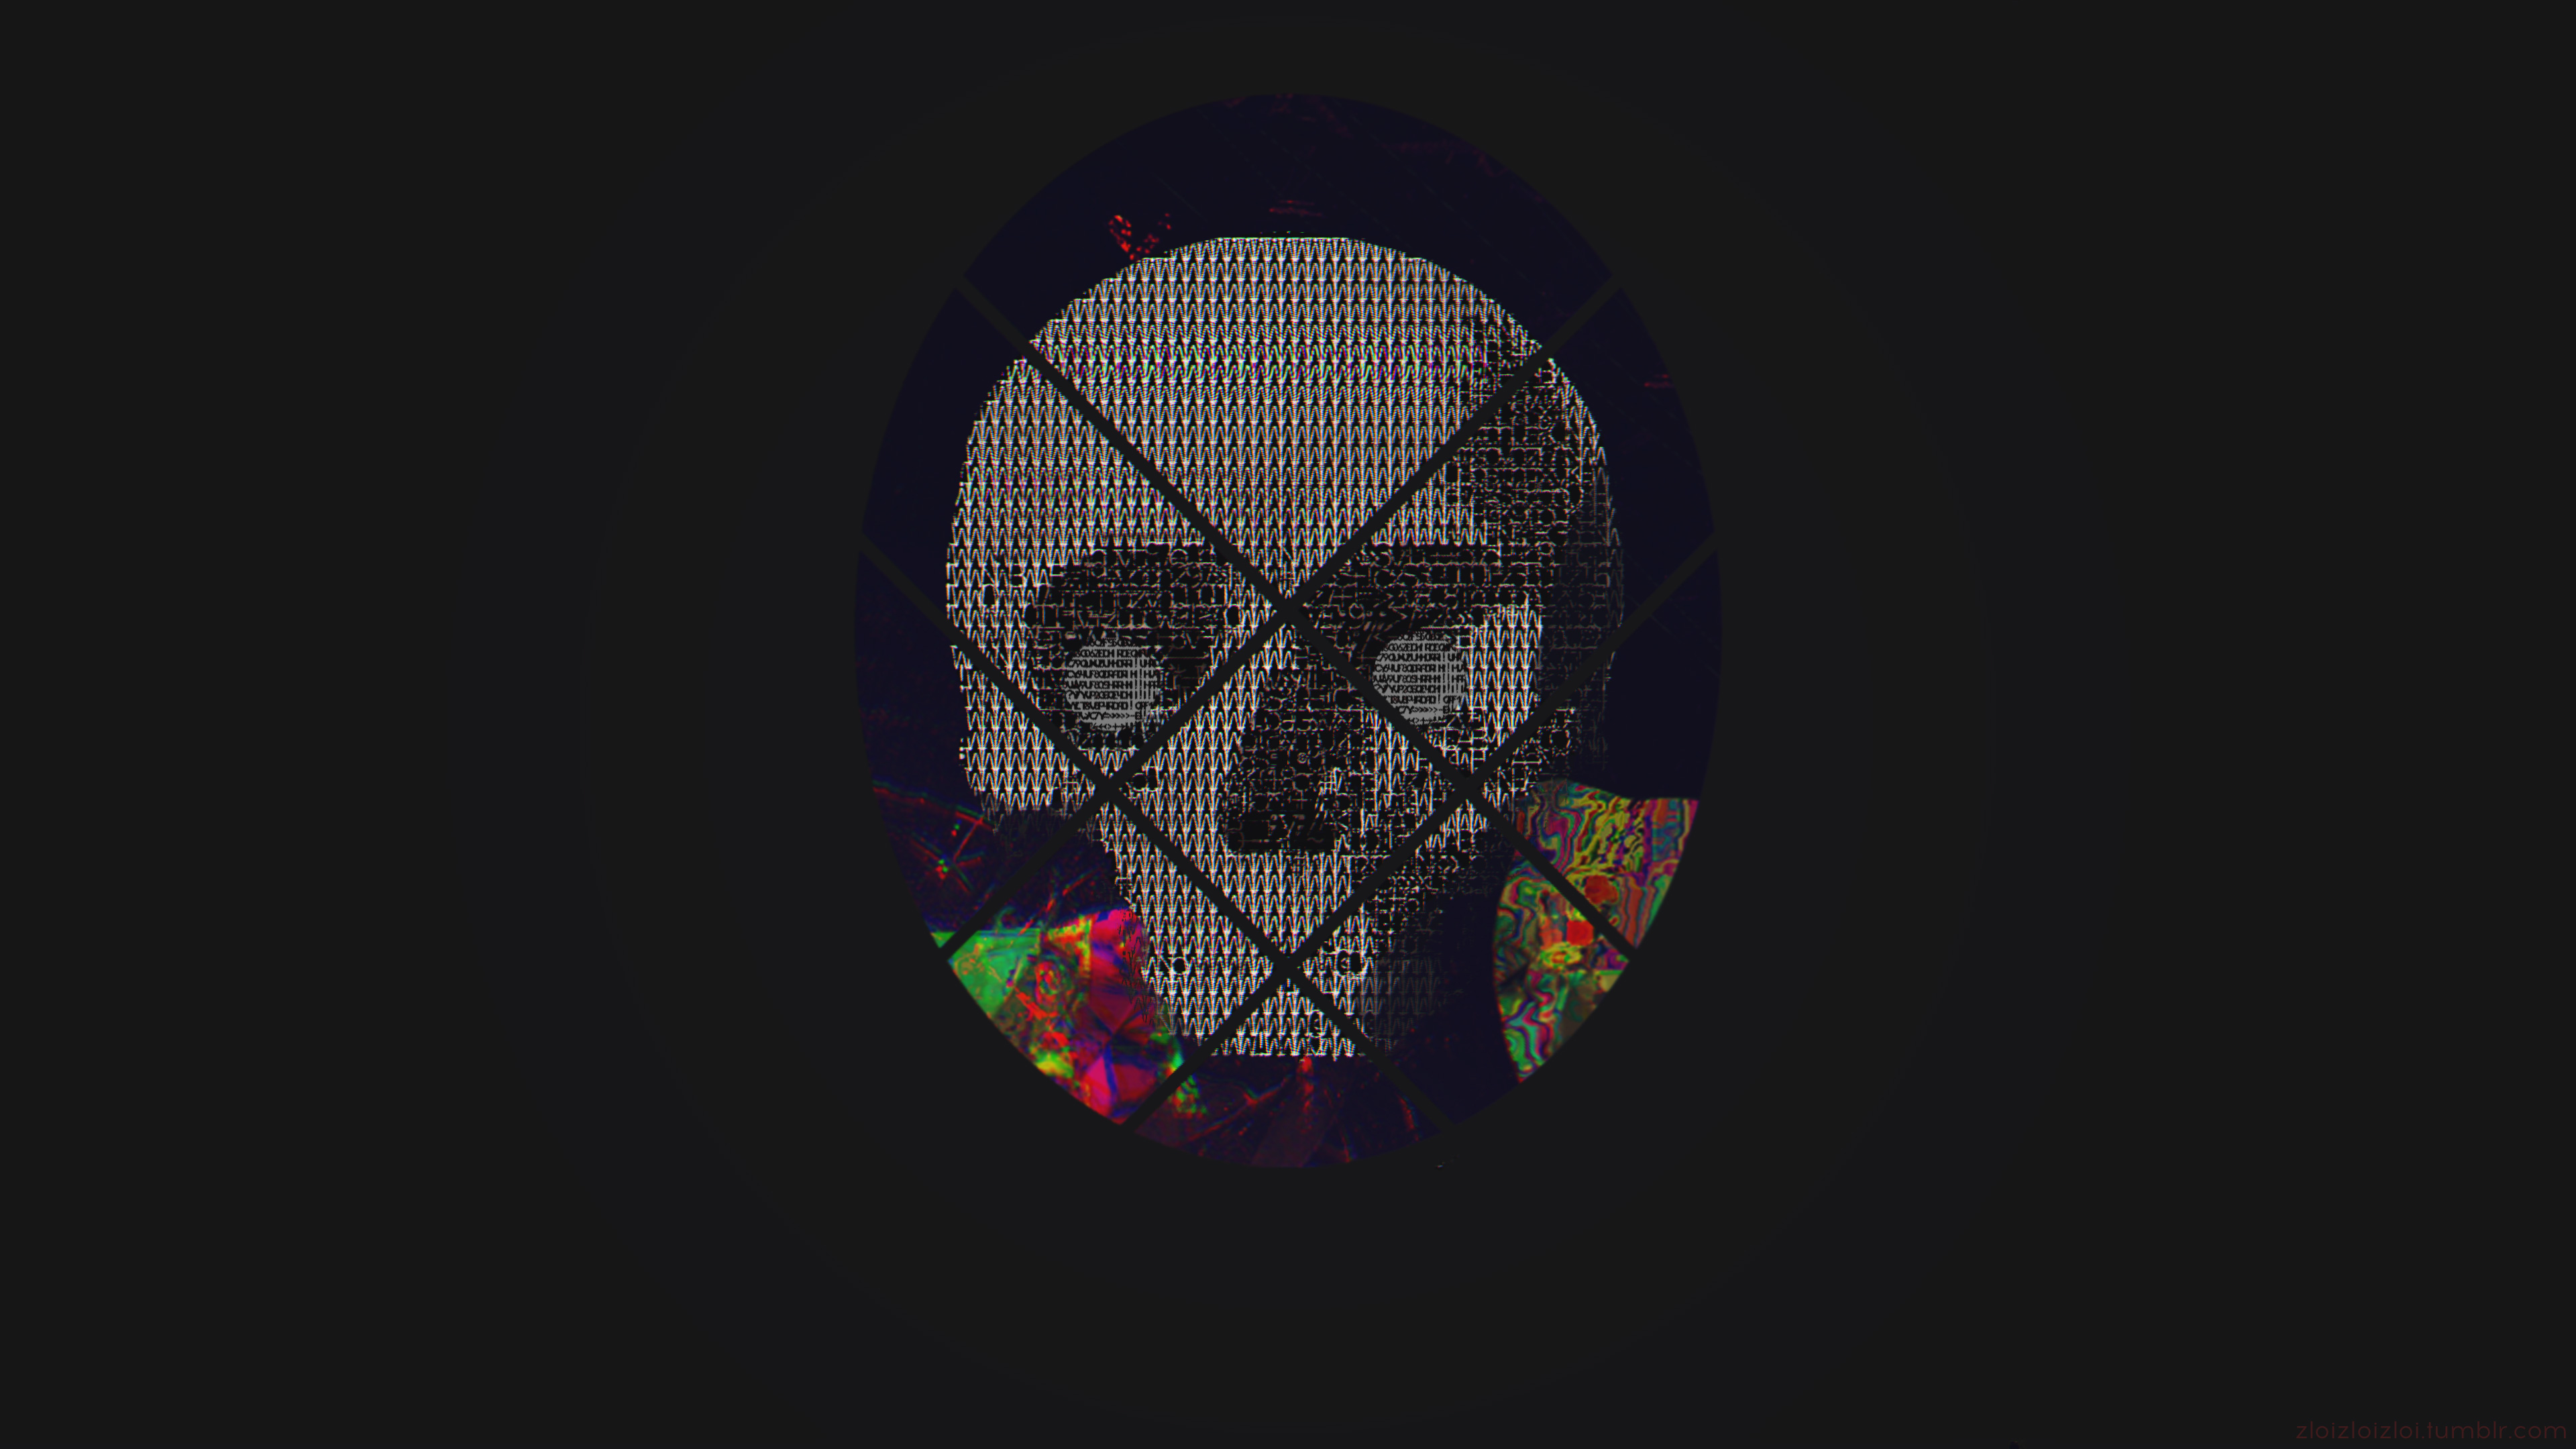 Skull Abstract Art 4k Hd Artist 4k Wallpapers Images